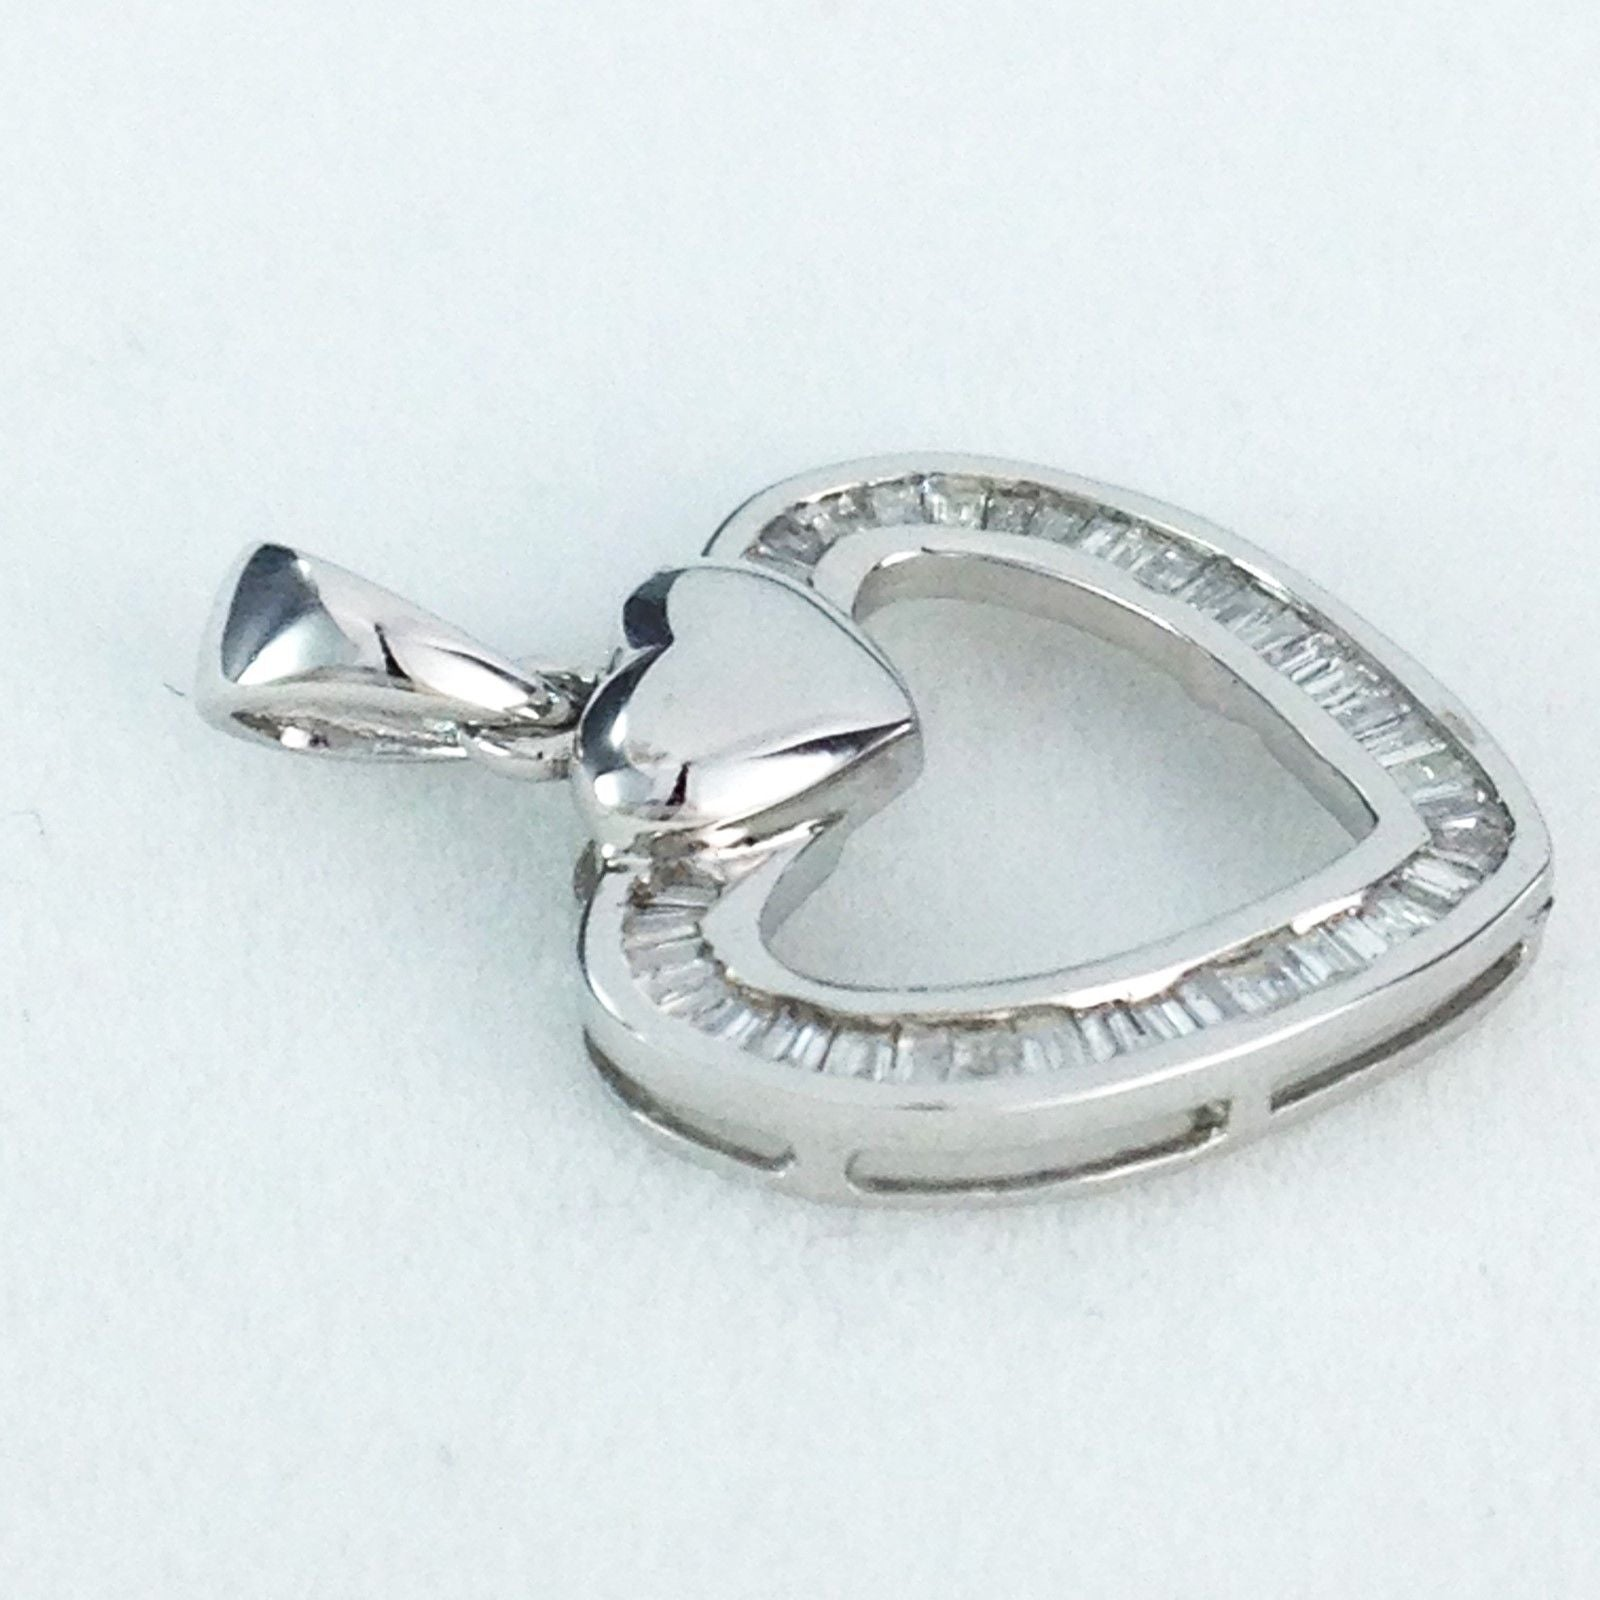 18k White Gold & Genuine Diamond Heart Pendant NWT $488